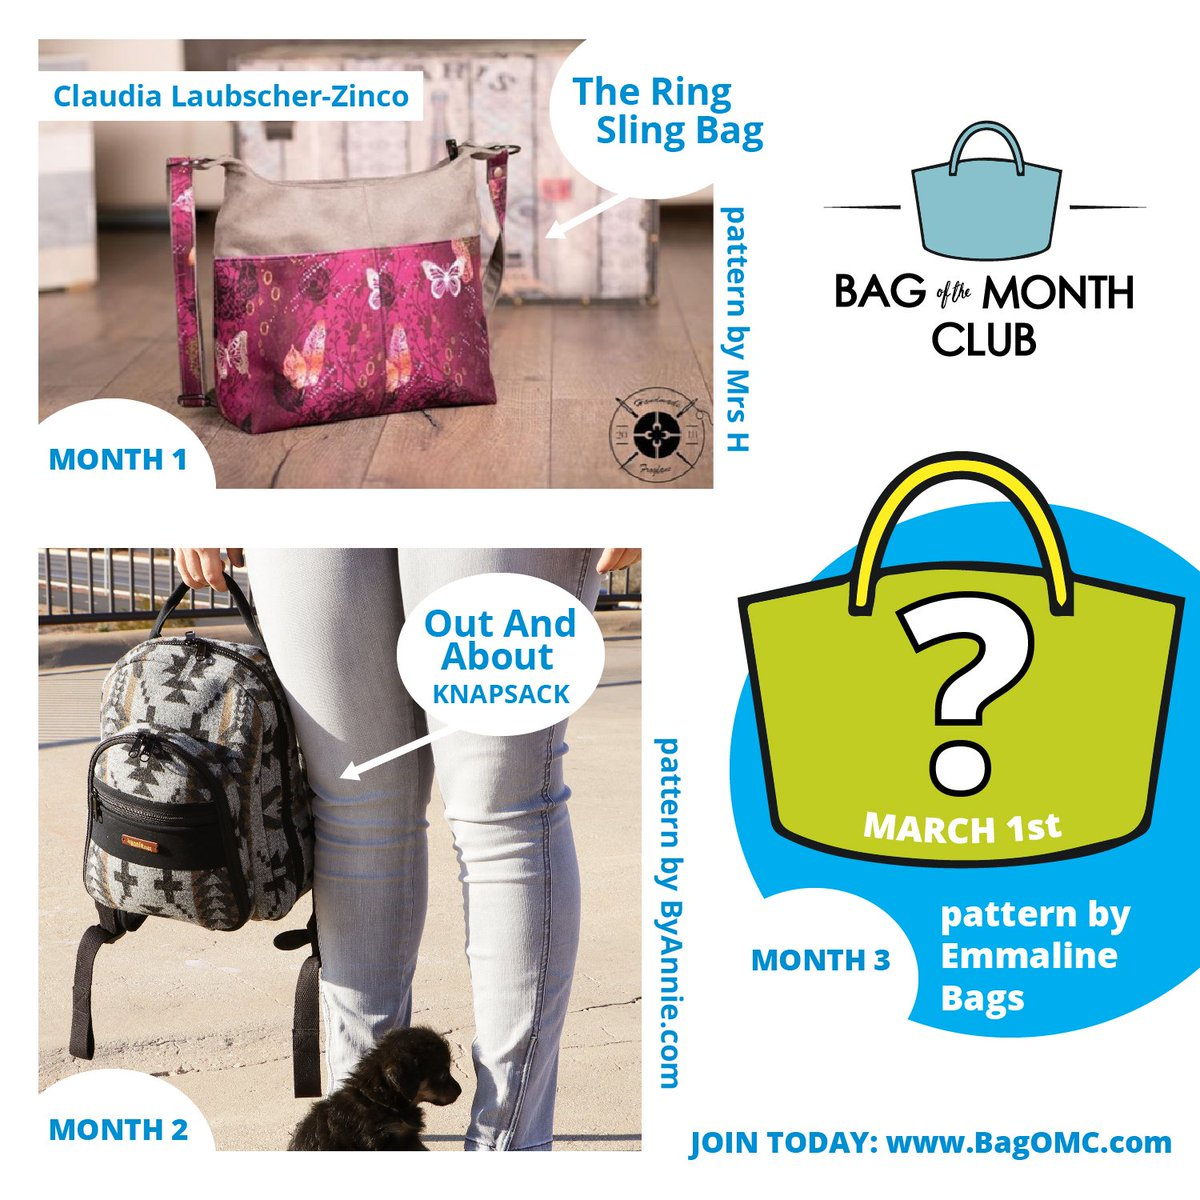 It's the final month to join the Bag of the Month Club! Join today at https://www.bagomc.com/join-the-club.html… for exclusive access to three amazing patterns. #sewingclub #bagmaking #diylife #fridayfeeling #dontmissout